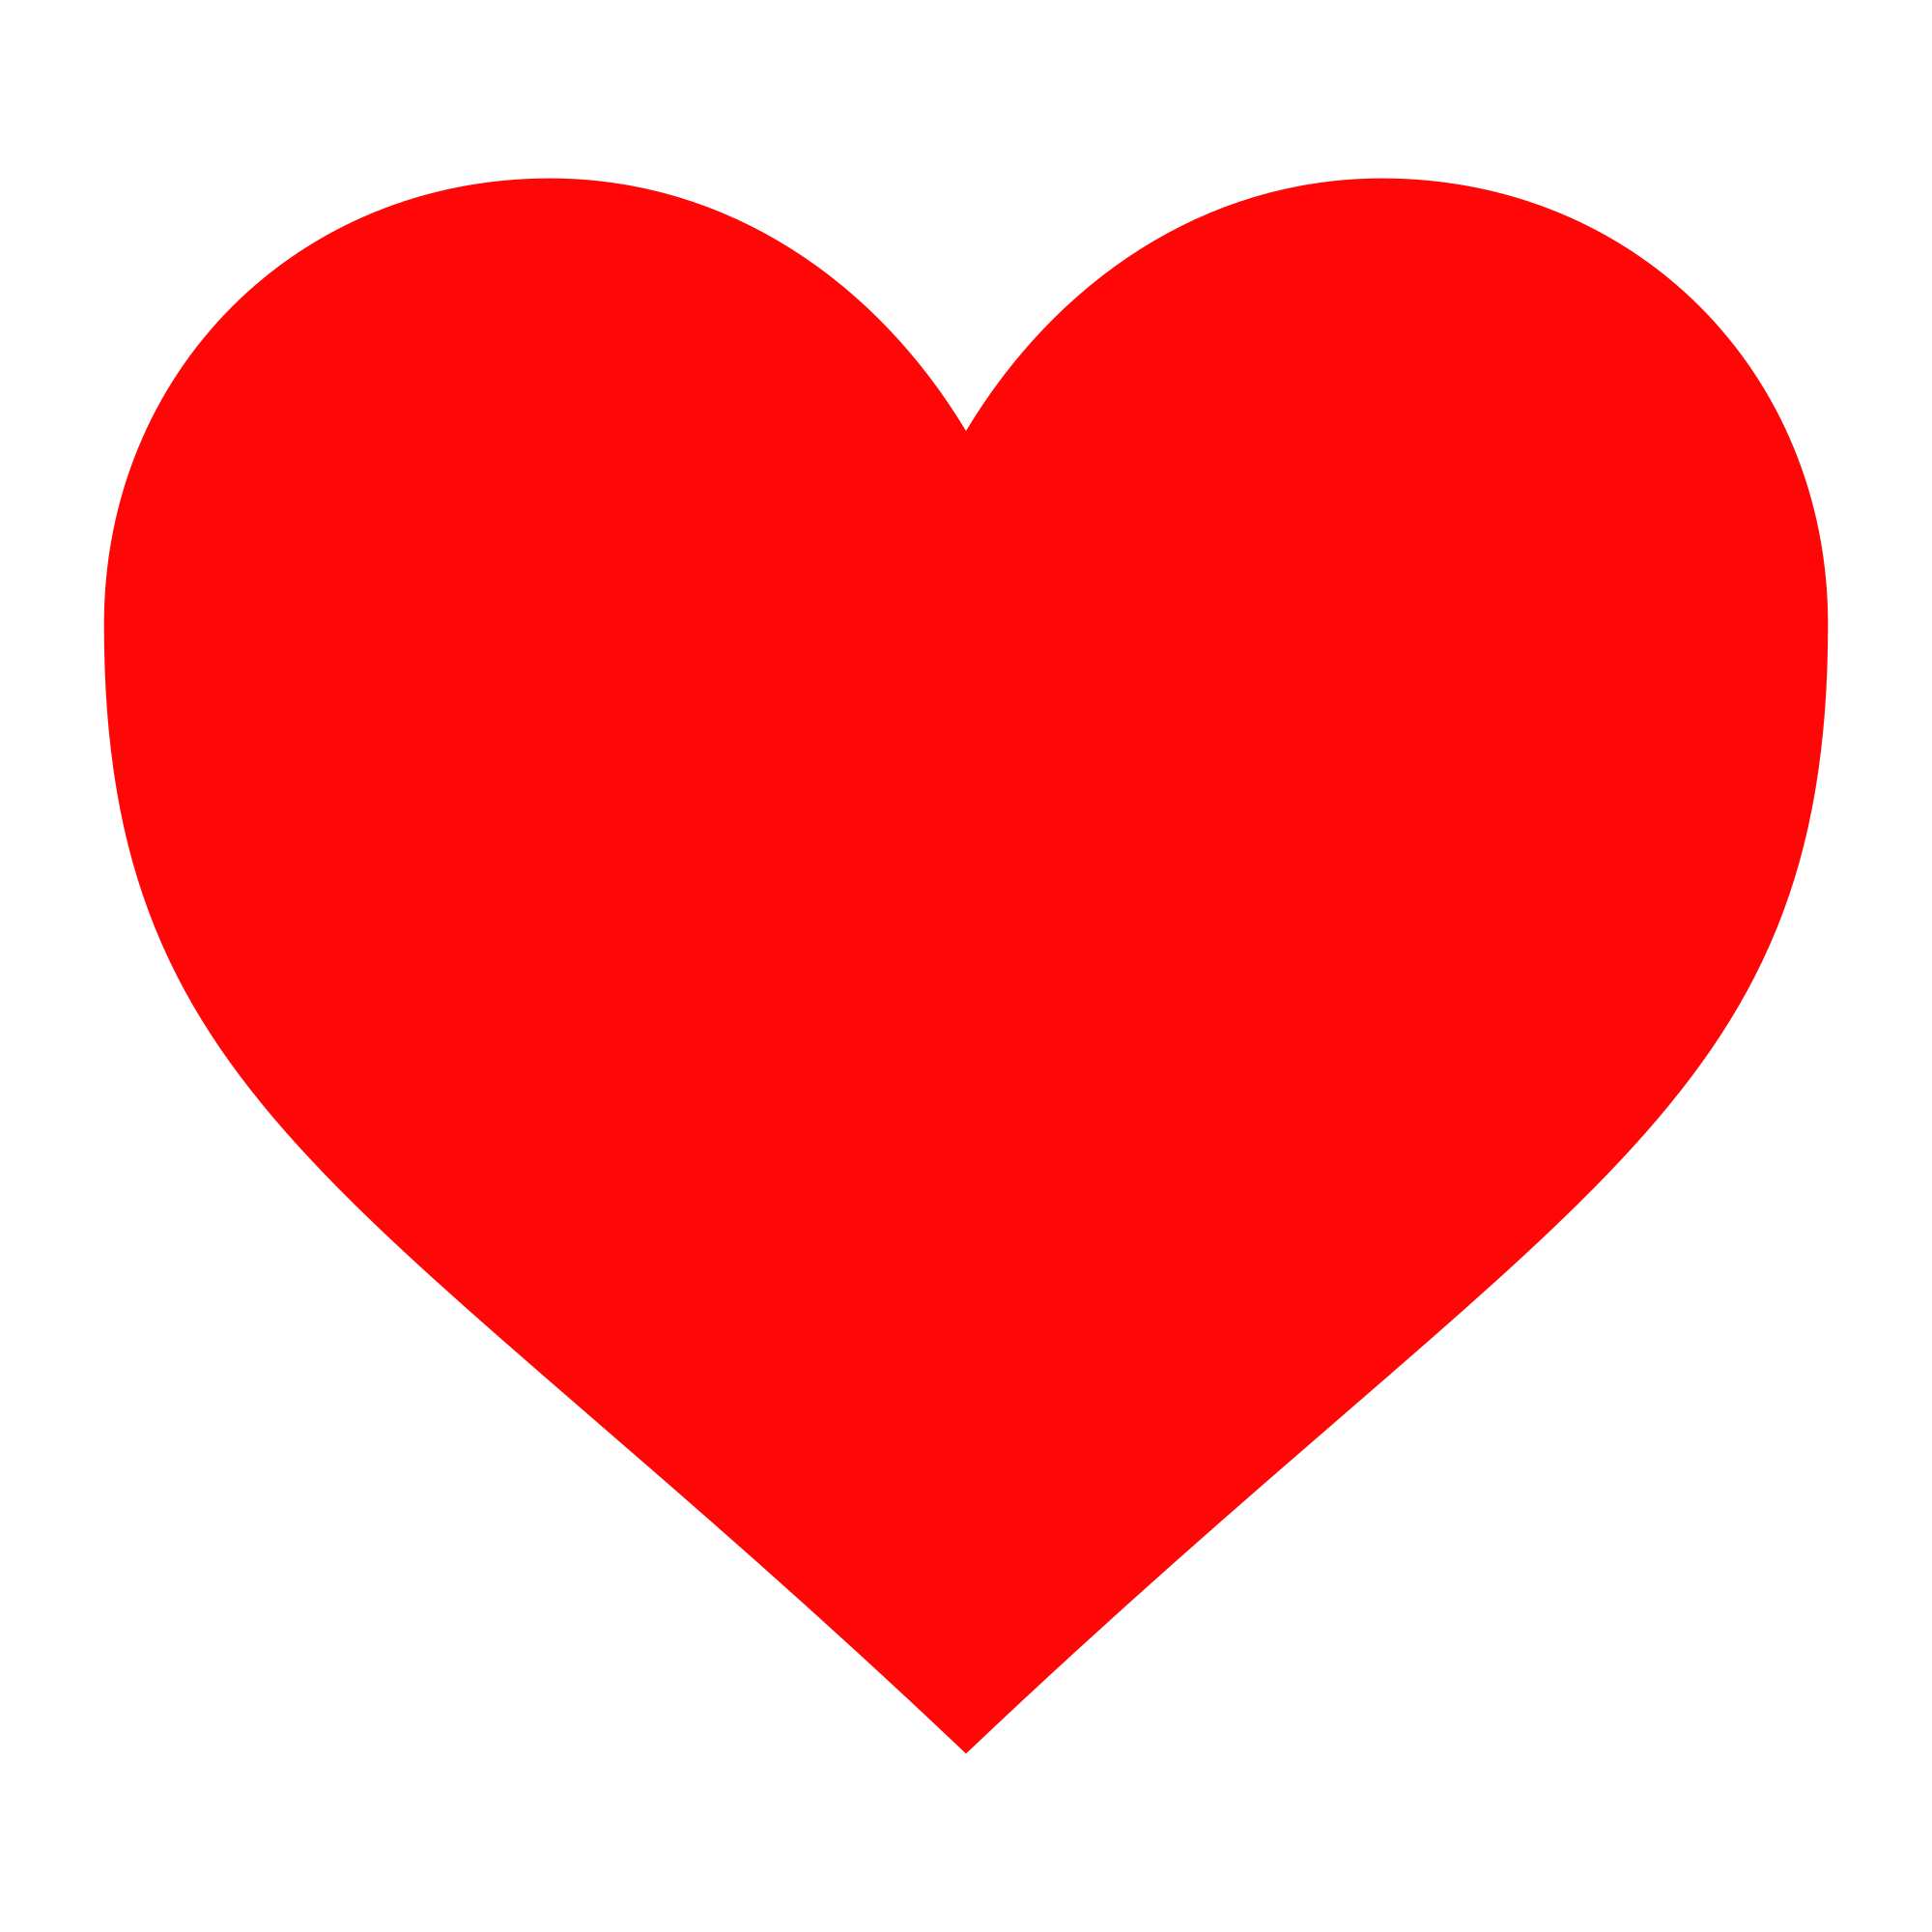 Love sign png. File heart coraz n